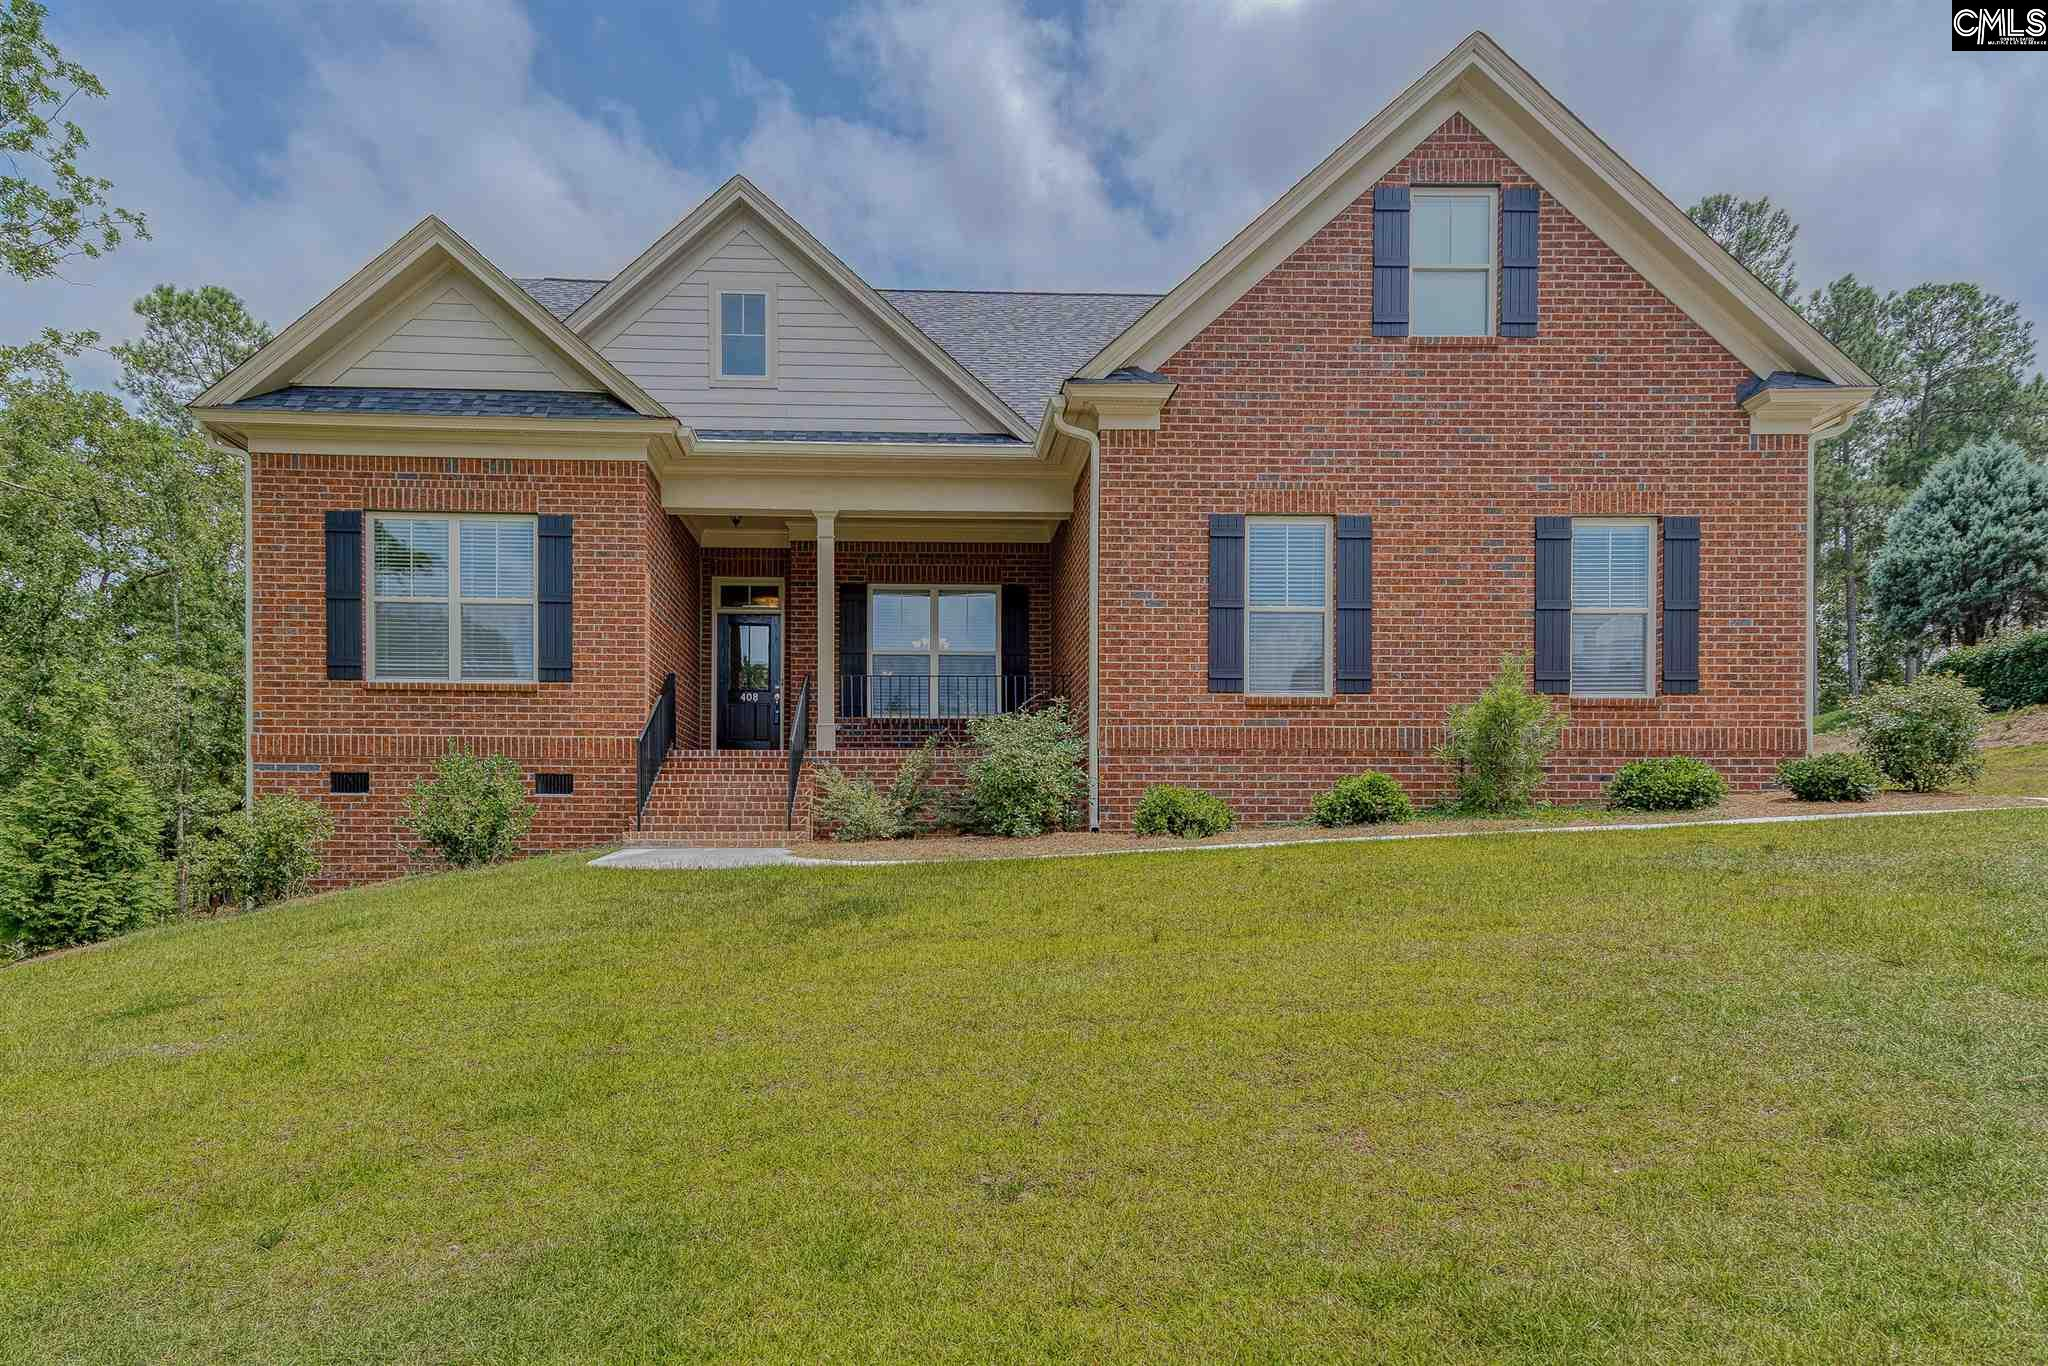 408 Deer Crossing Elgin, SC 29045-8664